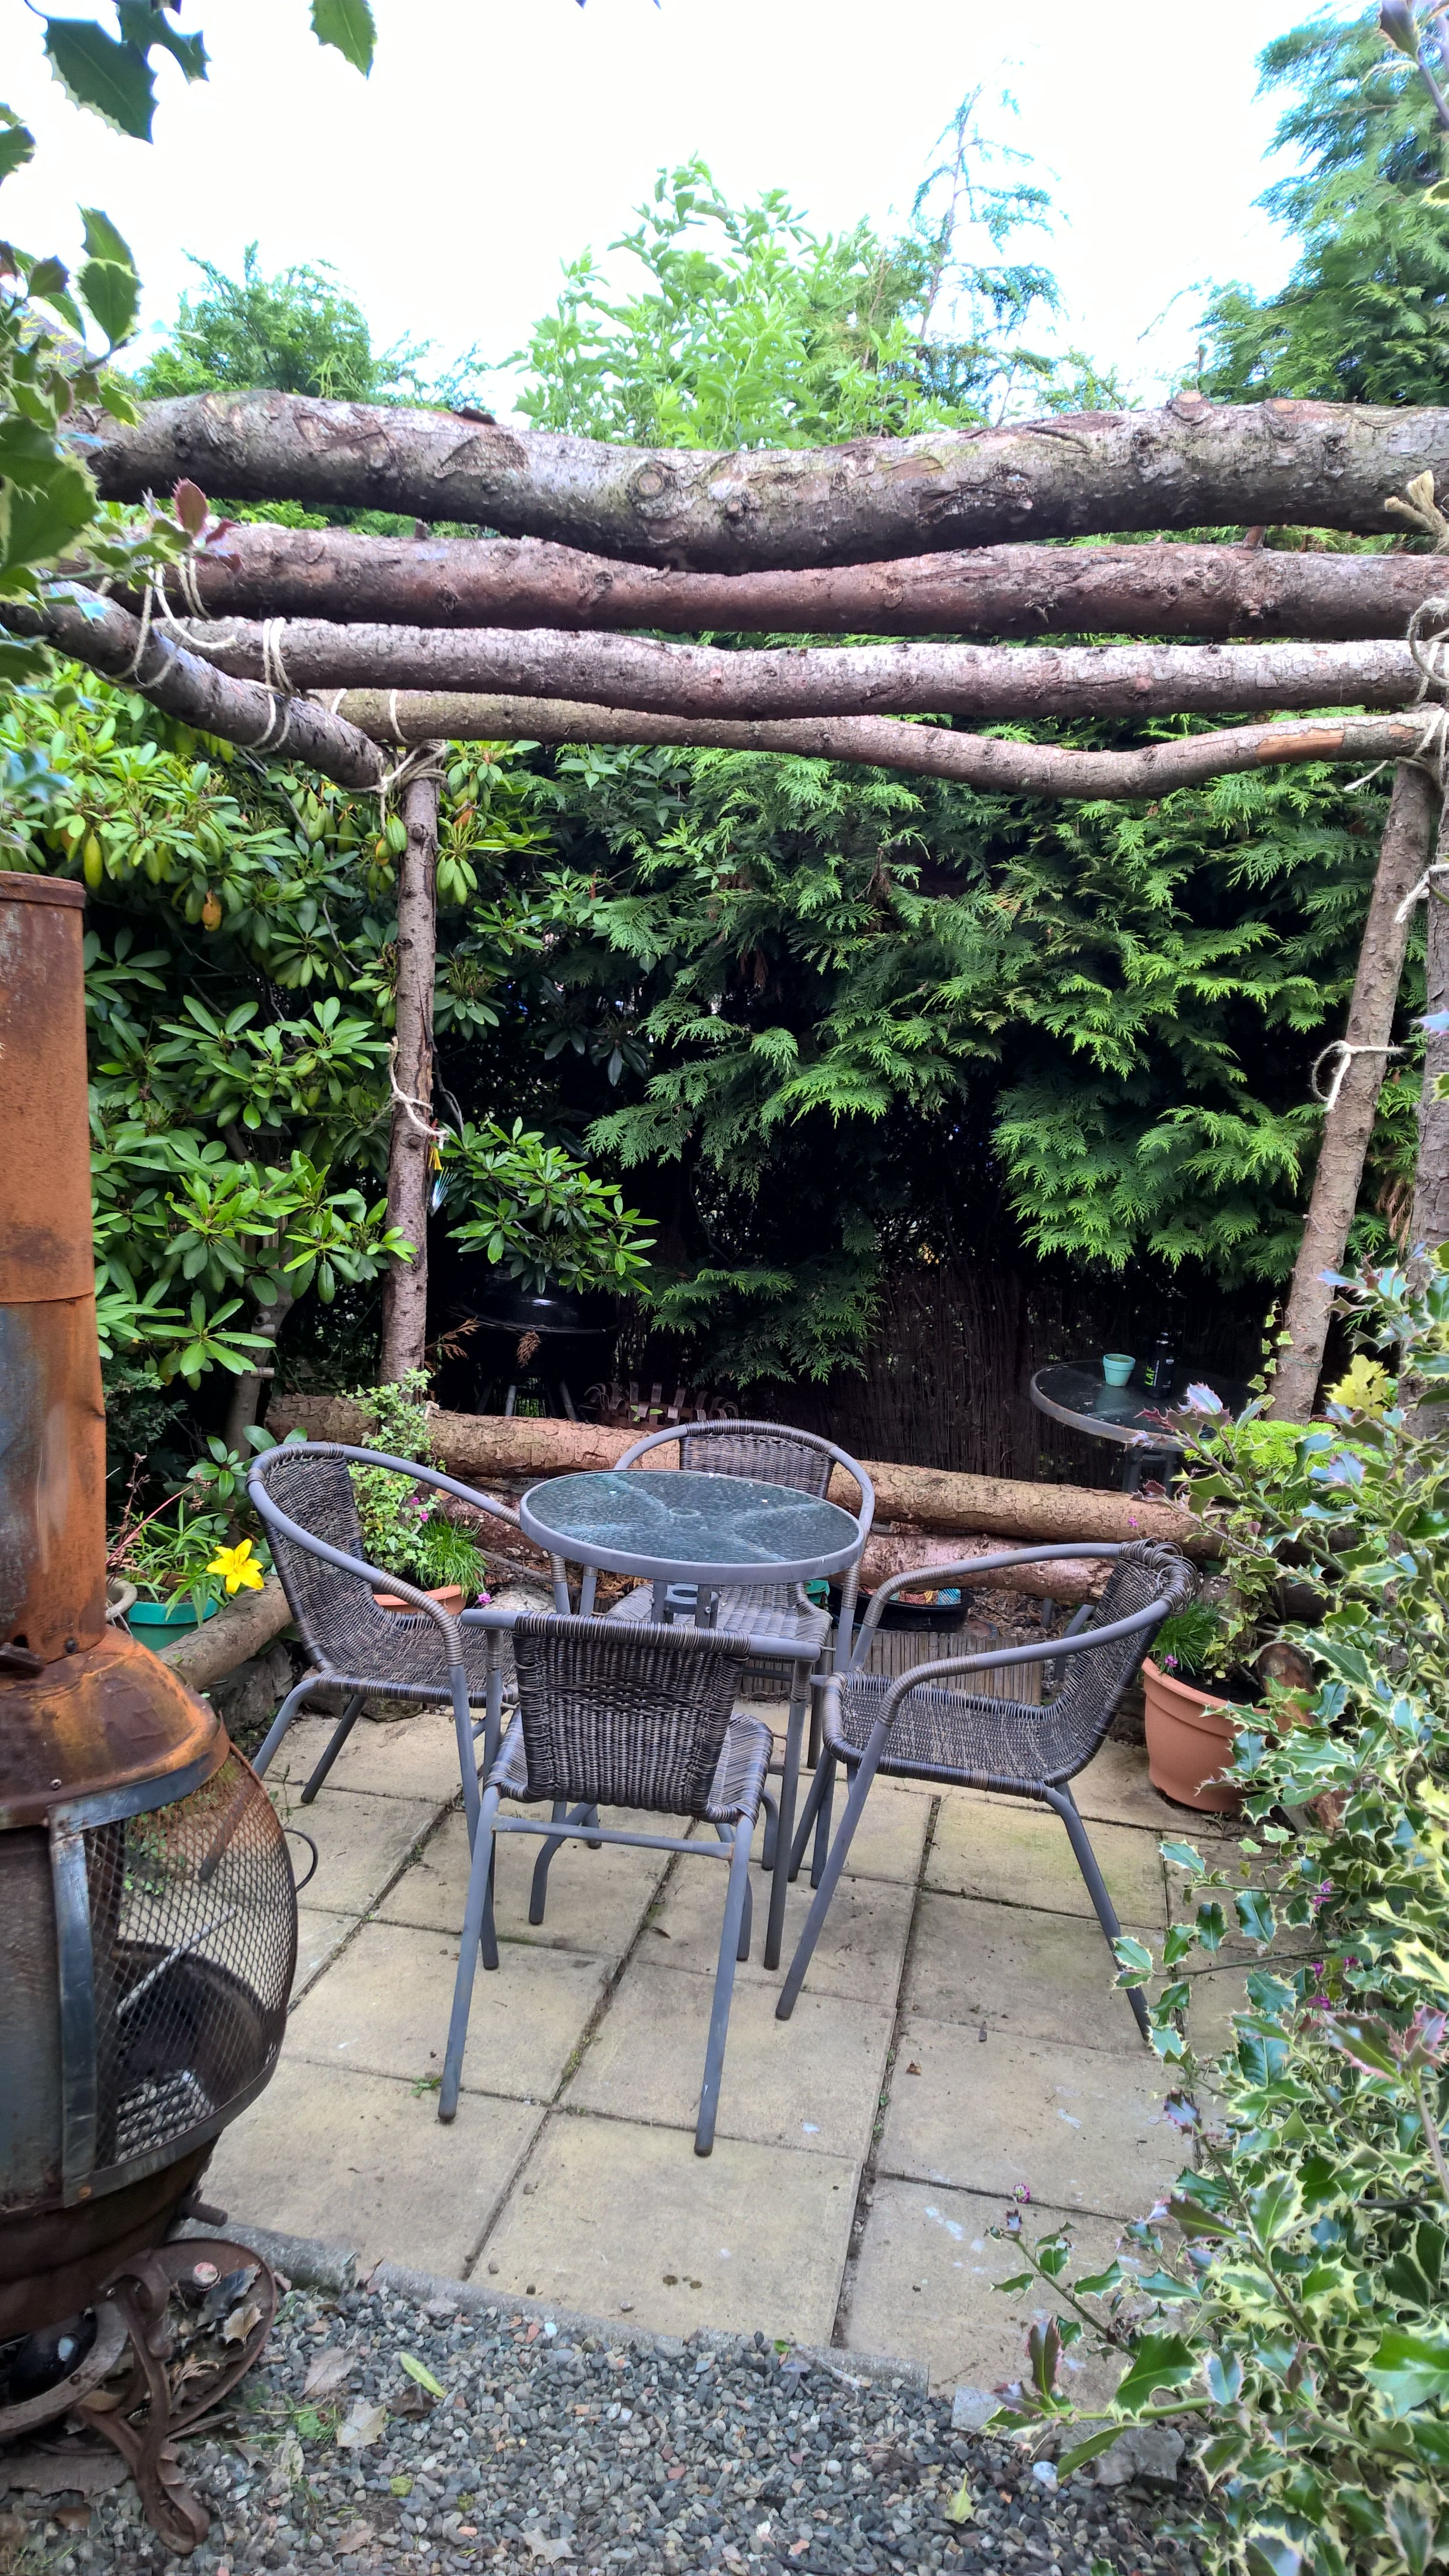 Rustic Pergola Made With Logs And Rope I Got The Logs For Free Sank Them Into Plastic Plant Pots Two Thirds Full Of Post Cement Topped With Soil And Clim Tuin